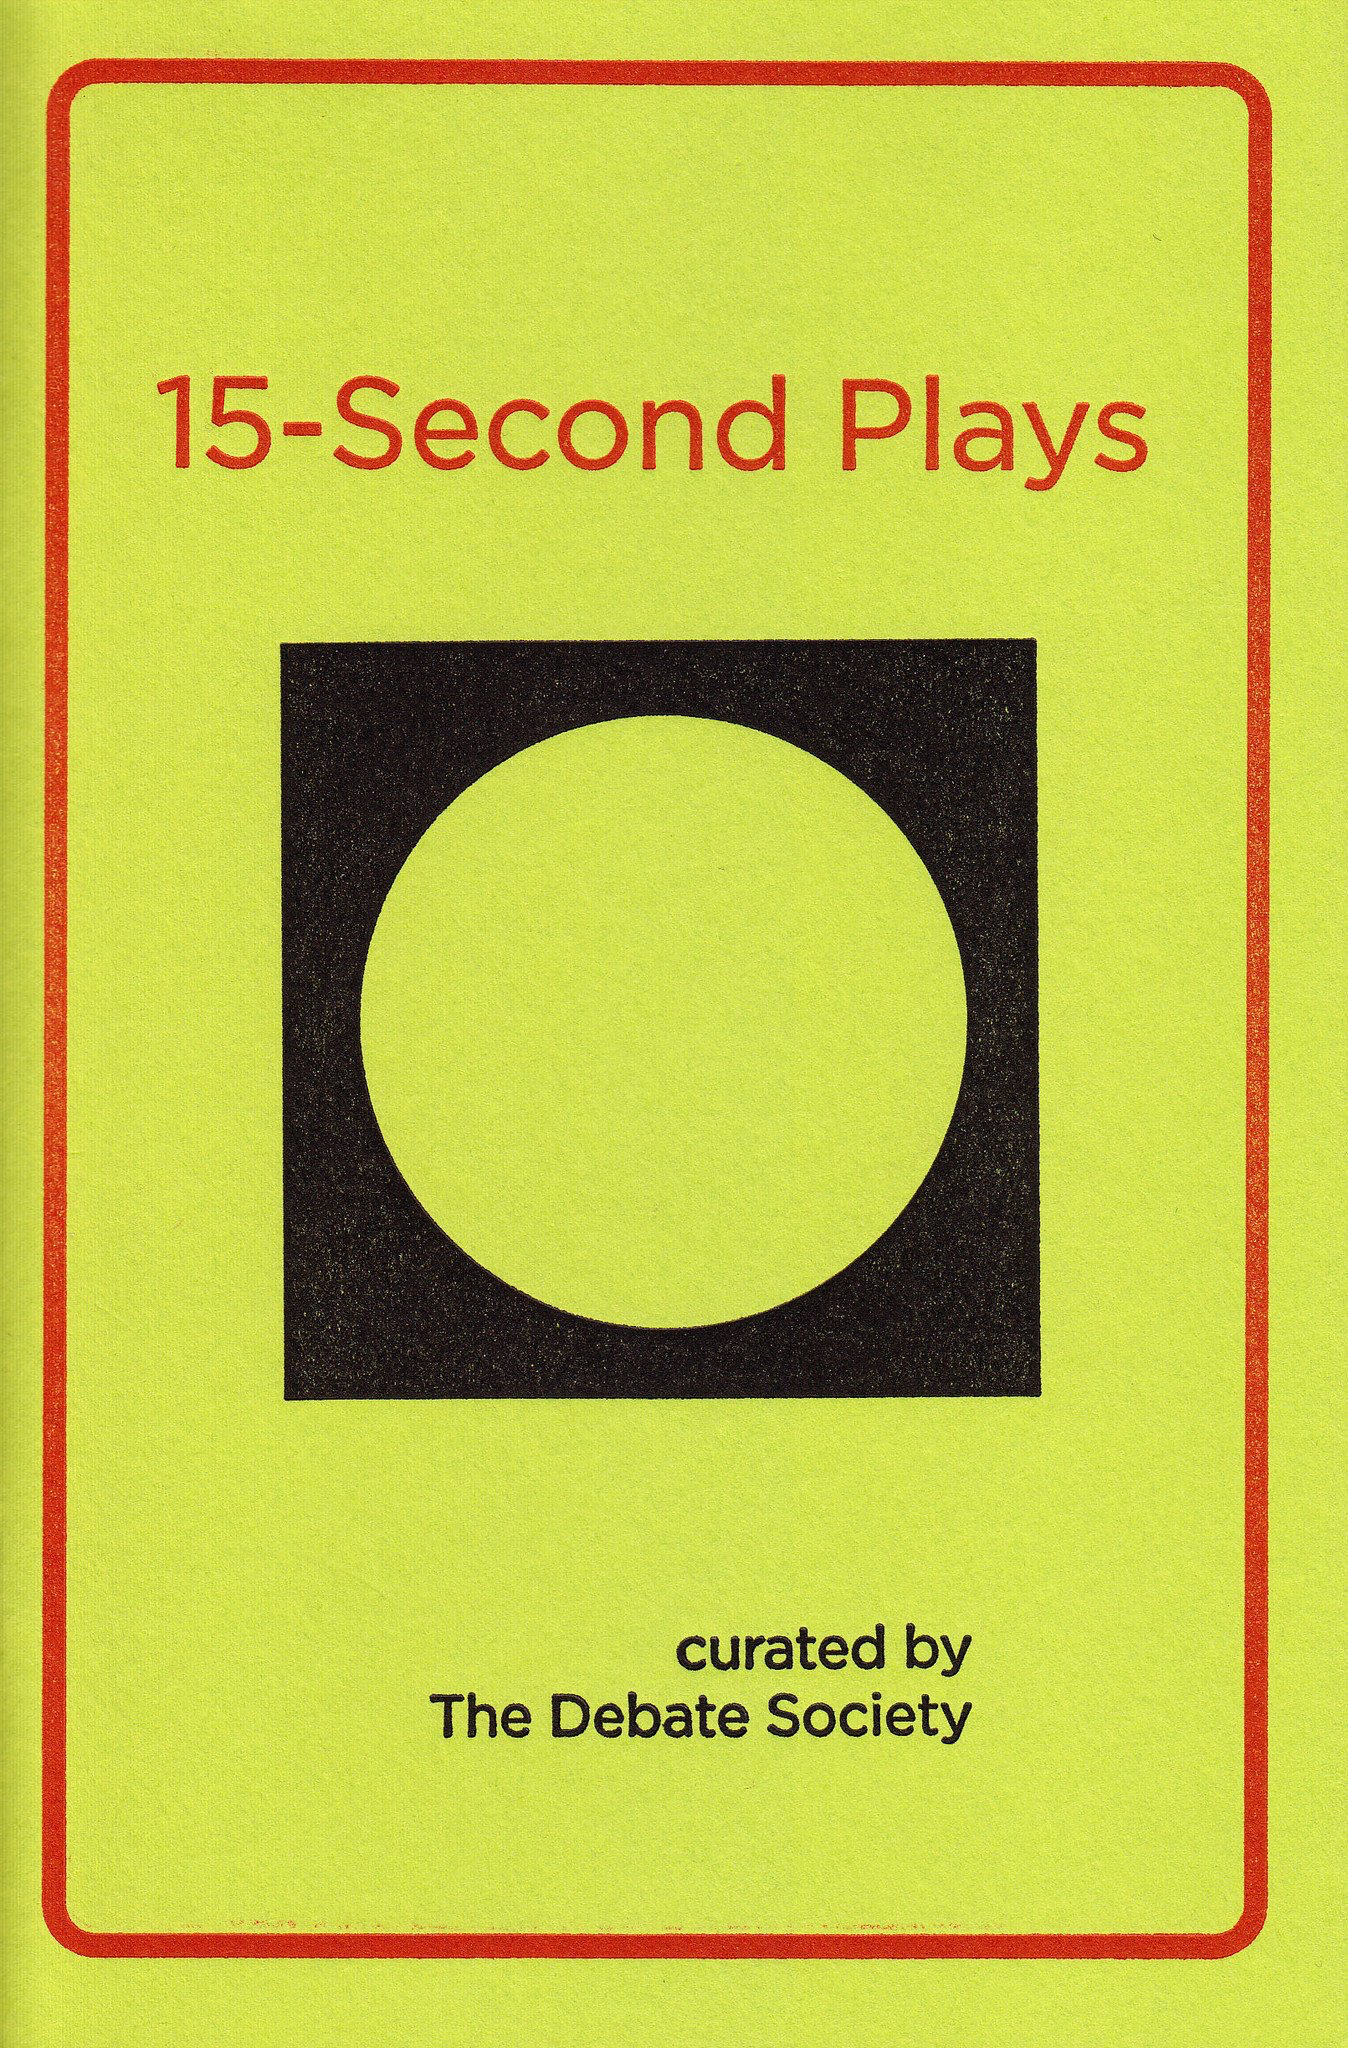 15-Second Plays